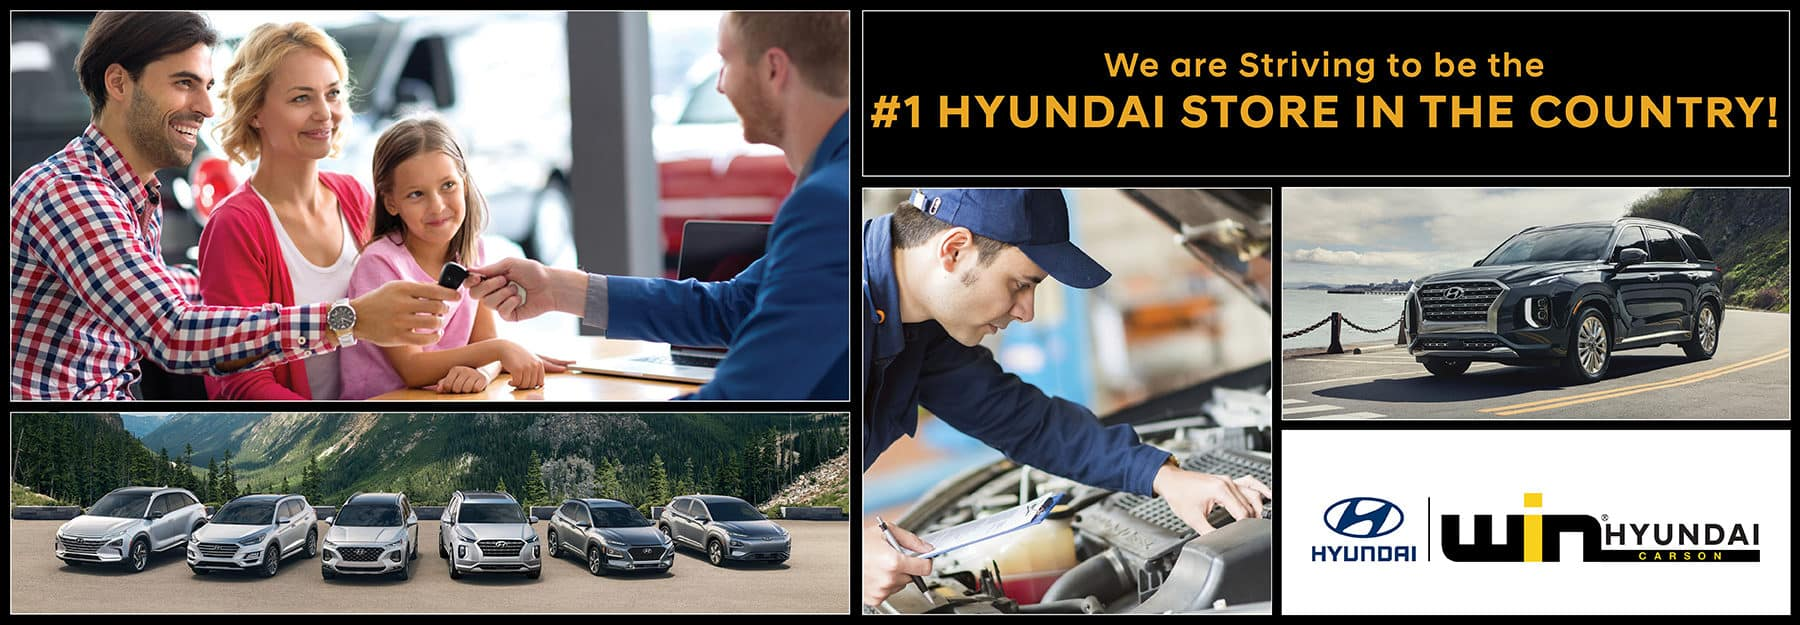 WIN Hyundai: Striving #1 Hyundai Store in the Country